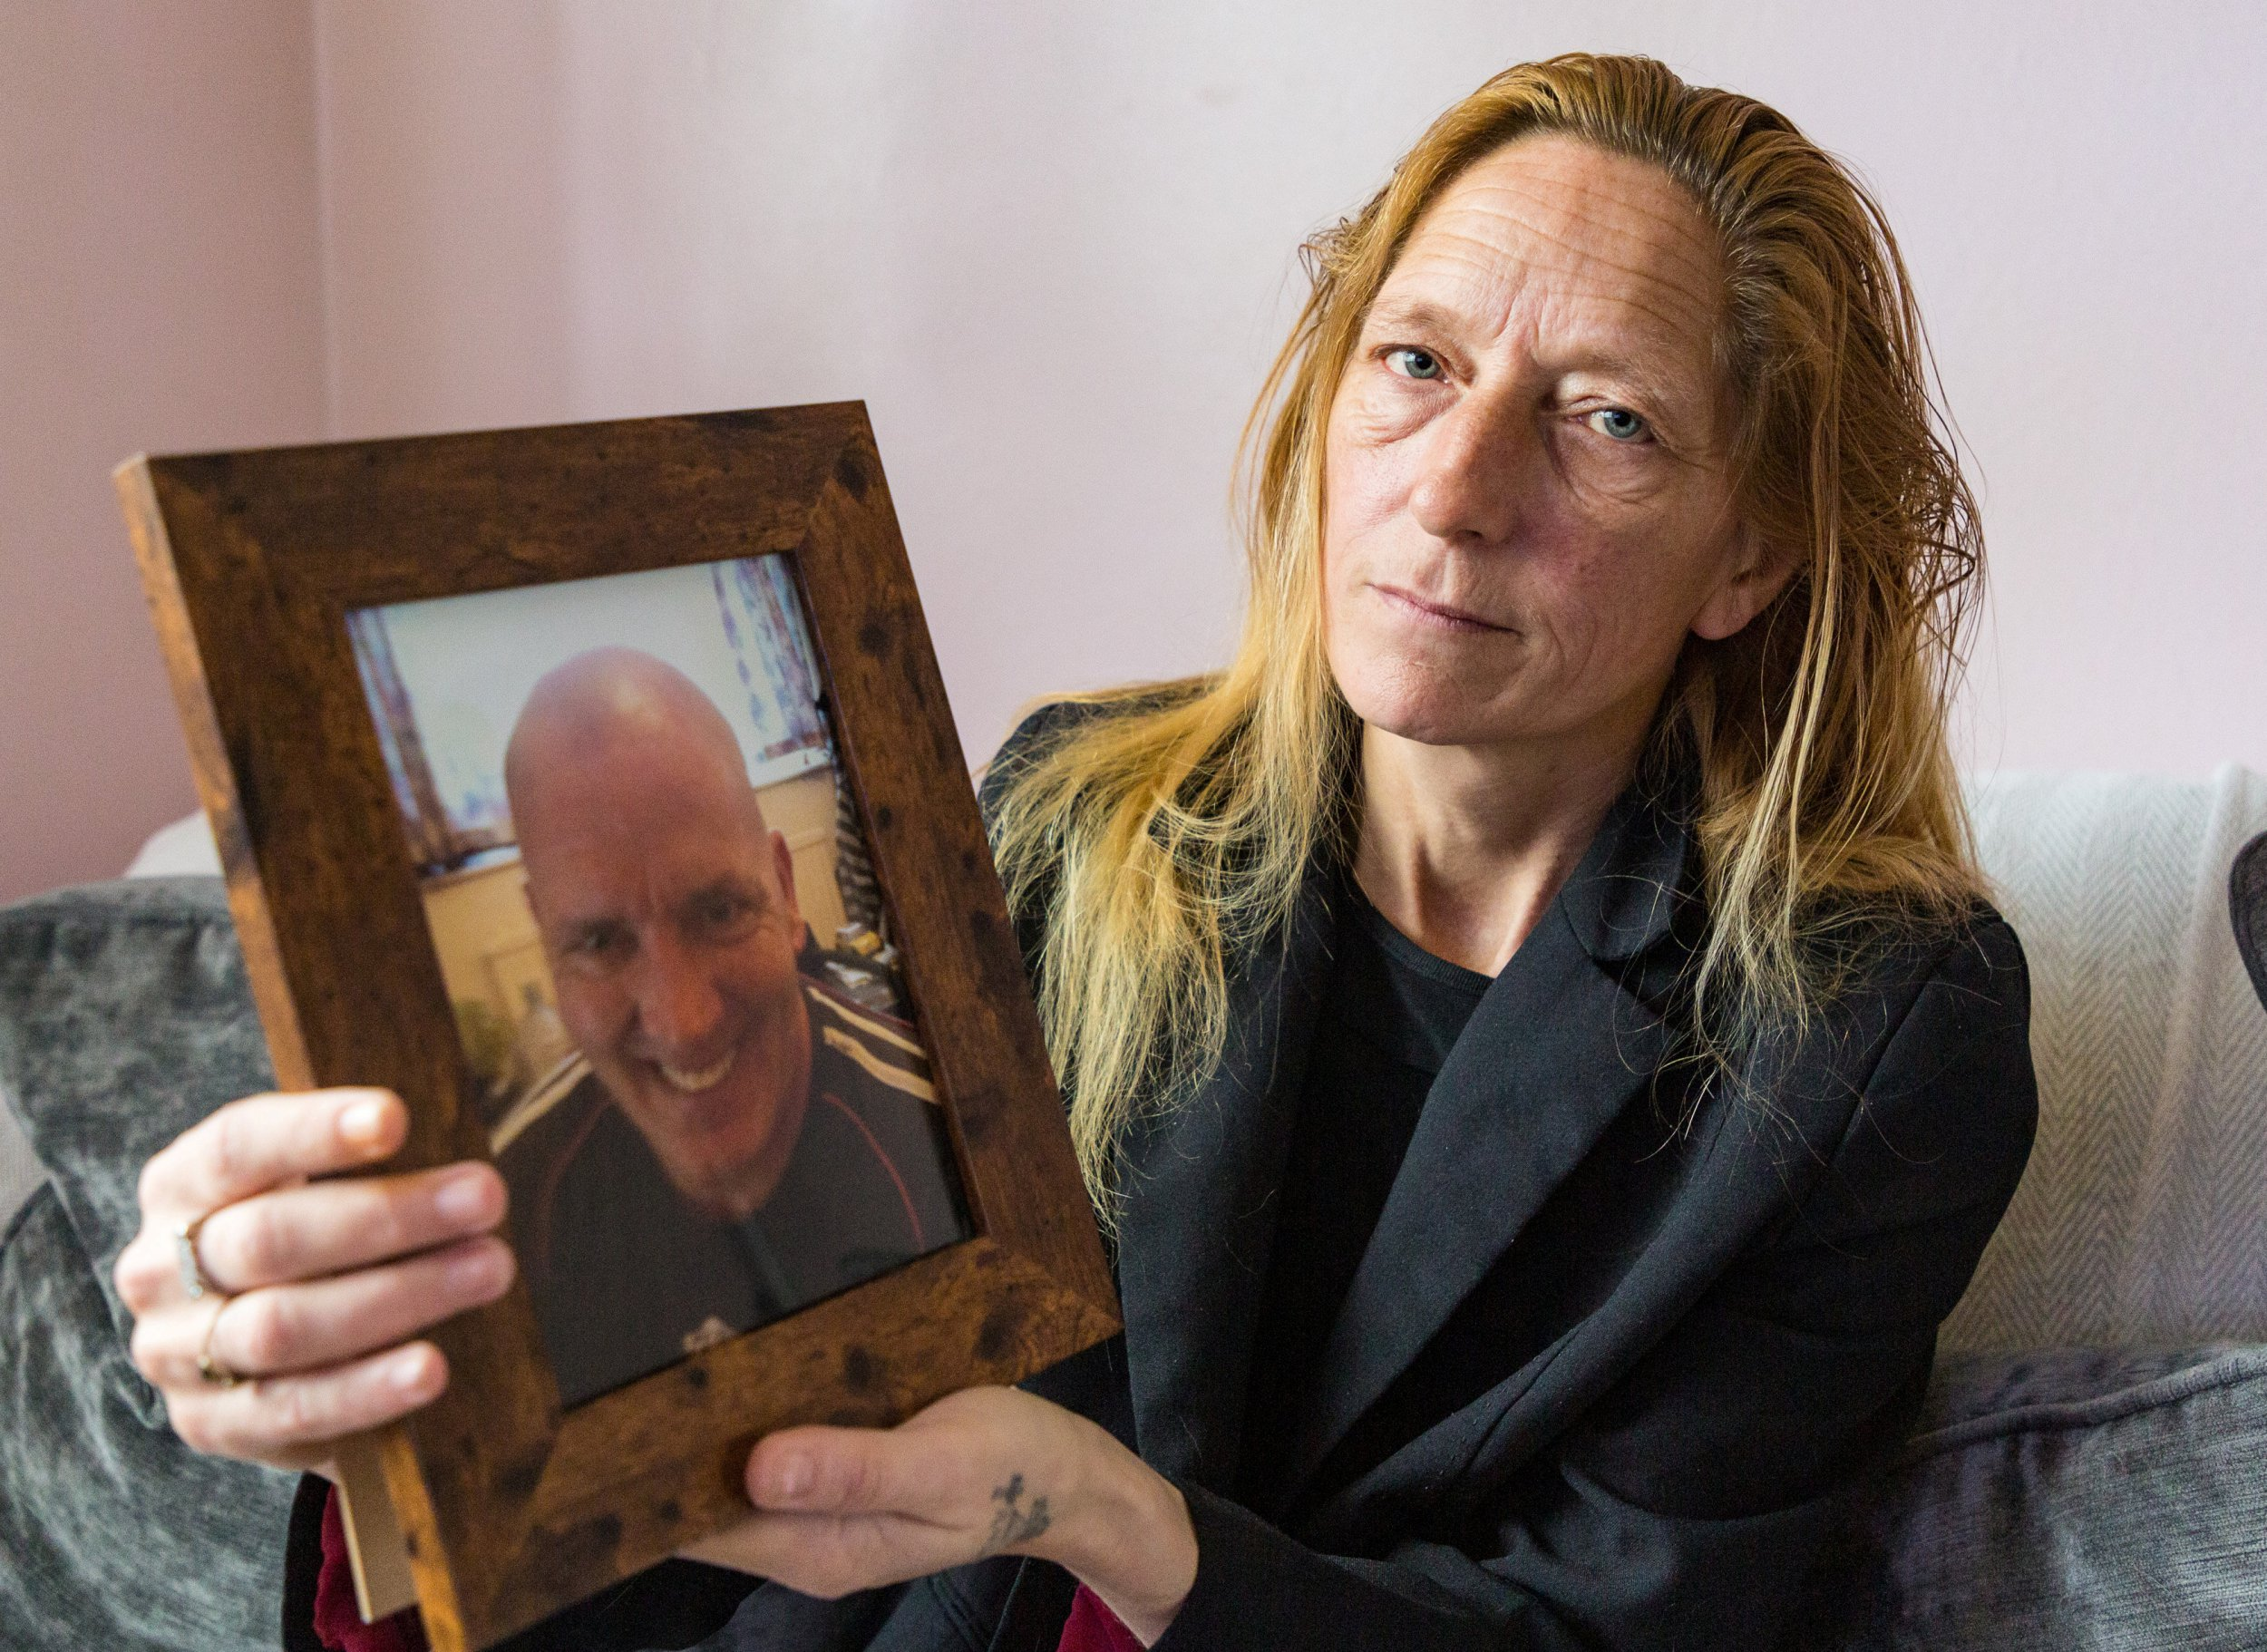 "Lisa Lane, 49, holds the only picture she has of her late partner Scott Wilkinson. See SWNS story SWOCfishing; The devastated girlfriend of a murdered fisherman has spoken out about the moment she found his 'brains scattered like blackberries' around the crime scene. Lisa Lane, 46, stumbled across the bloodied camping area after becoming worried when she hadn't heard from her partner Scott Wilkinson. Scott, 48, had been battered to death with a plank of wood by teen brothers Lenny and Shane Crawt. The pair were sentenced to life for his murder at Guildford Crown Court with a minimum term of 15 years on Tuesday. Their cousin 21-year-old cousin Charlie Smith, was convicted of manslaughter and sentenced to 13 years in prison Lisa and Scott had met and fallen in love just meters away from where the savage murder was committed. Lisa, a former cleaner, from Walton-on-Thames, Surrey, said: ""This is something that I'm never going to get over."